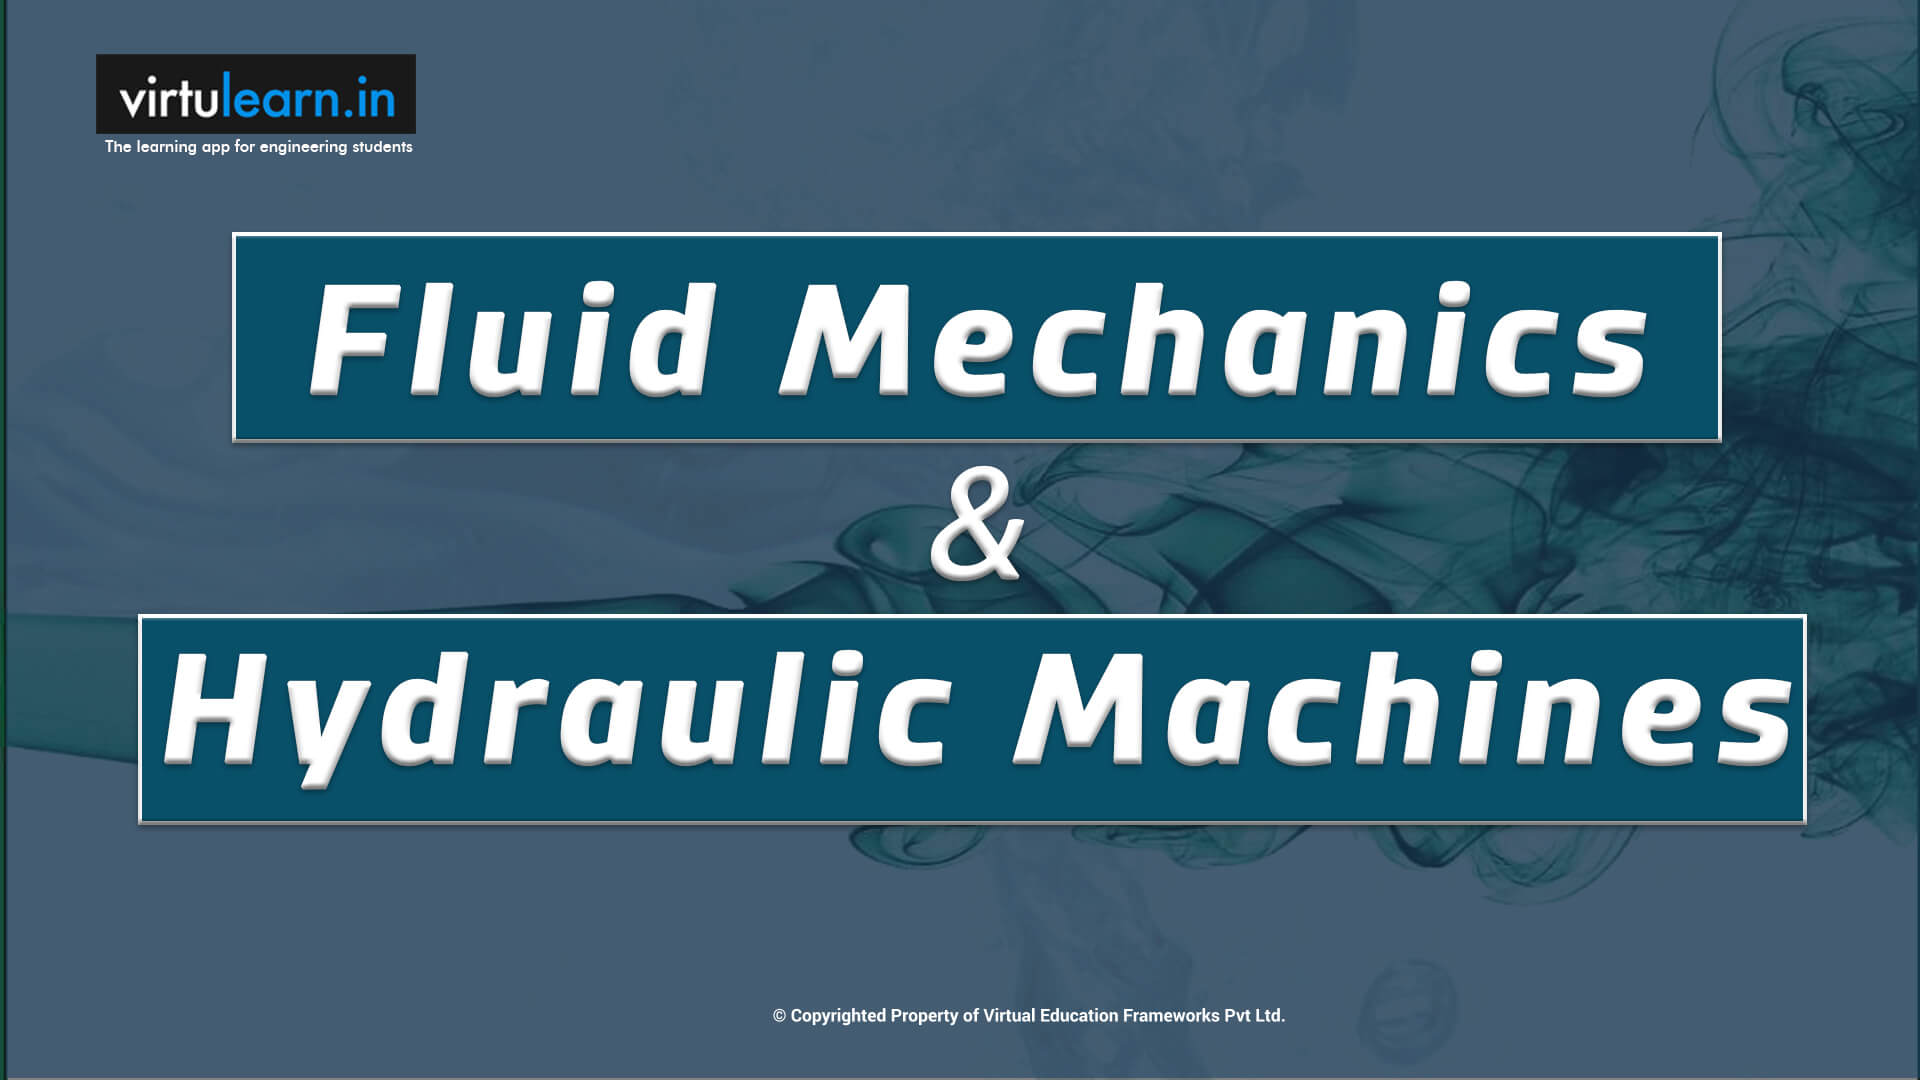 Fluid Mechanics and Hydraulic Machines online videos